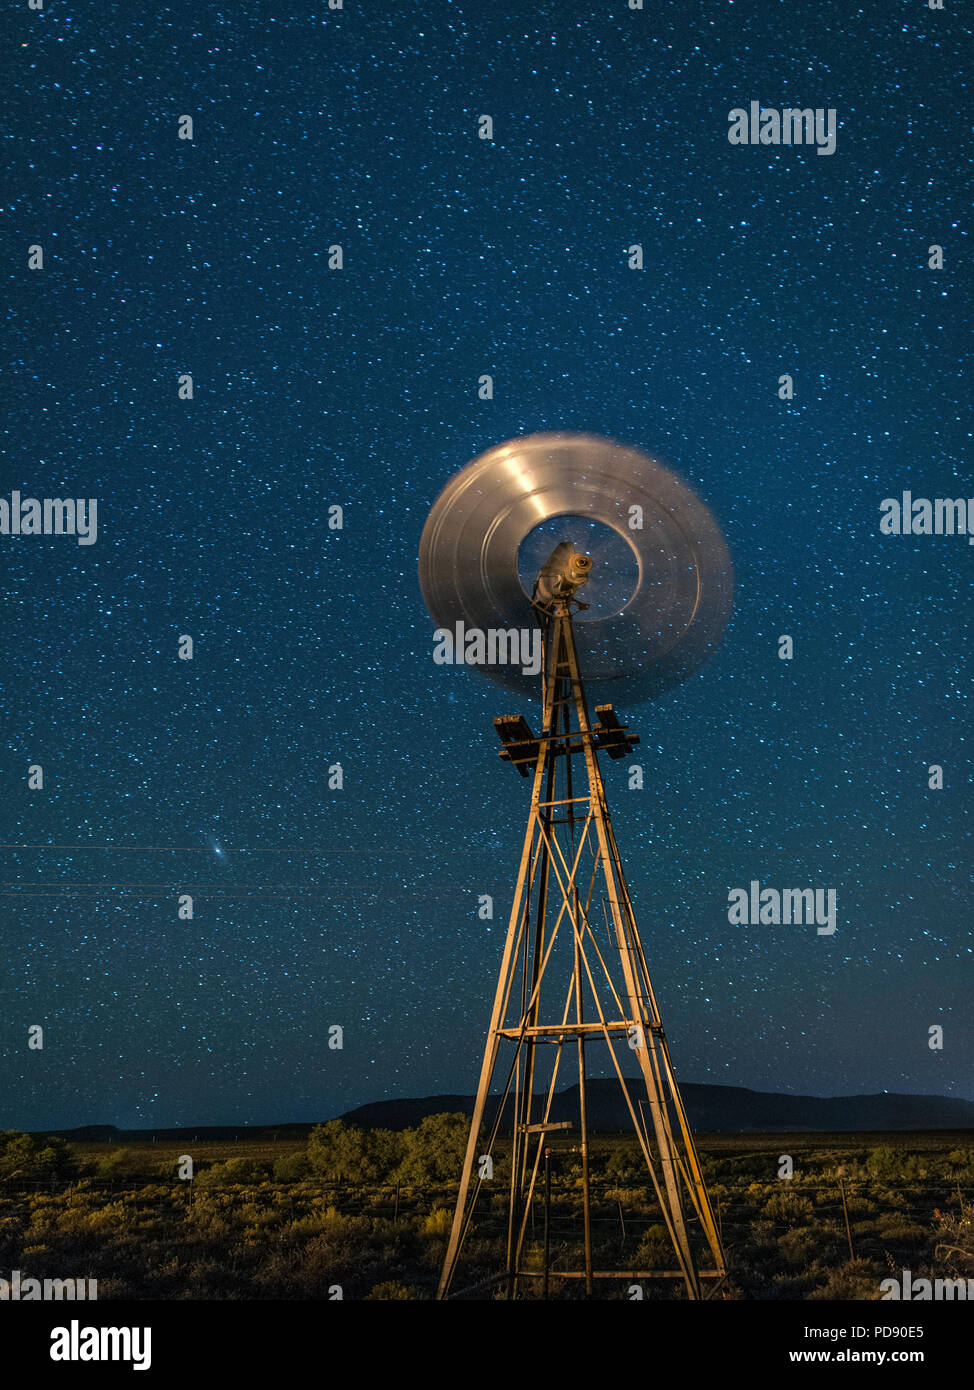 Windmill and stars in the Karoo region of South Africa. - Stock Image